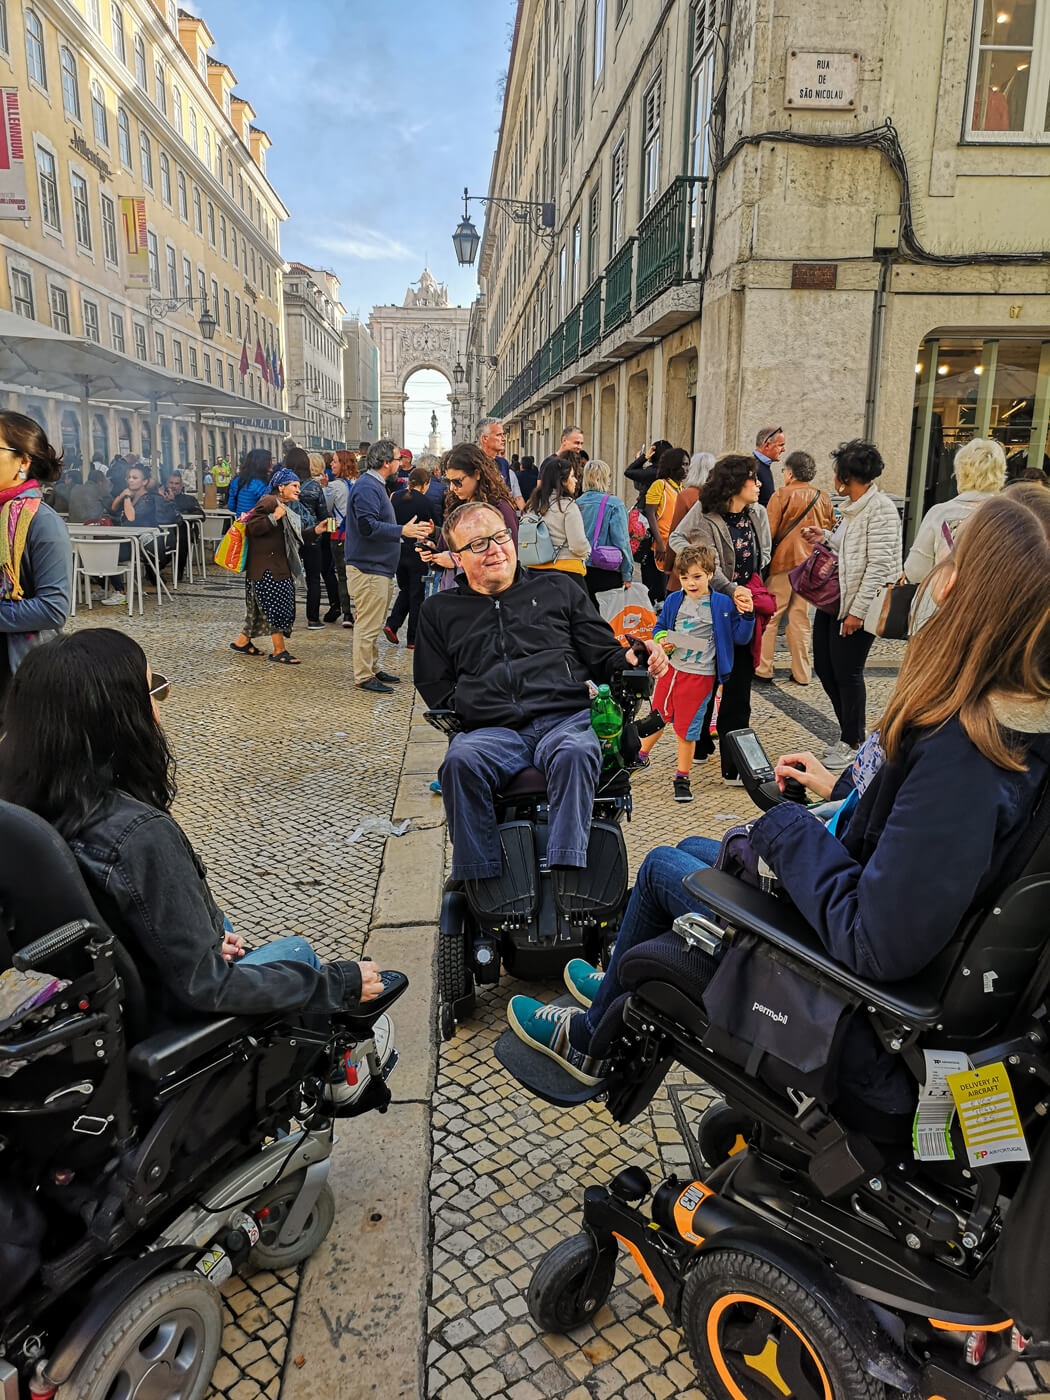 Emma, John and Blandie, all wheelchair users sitting together talking in the middle of downtown Lisbon.